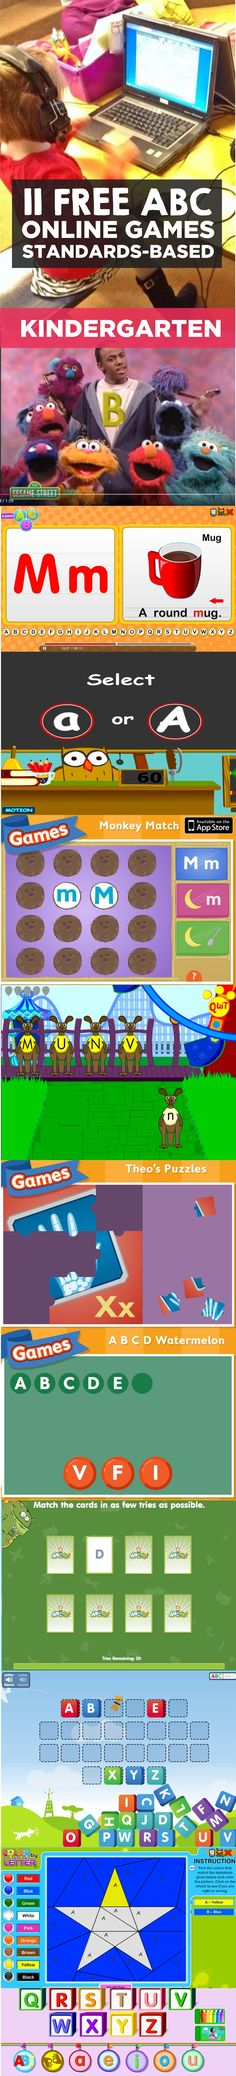 Love these free alphabet games online for kindergarten - so easy to use